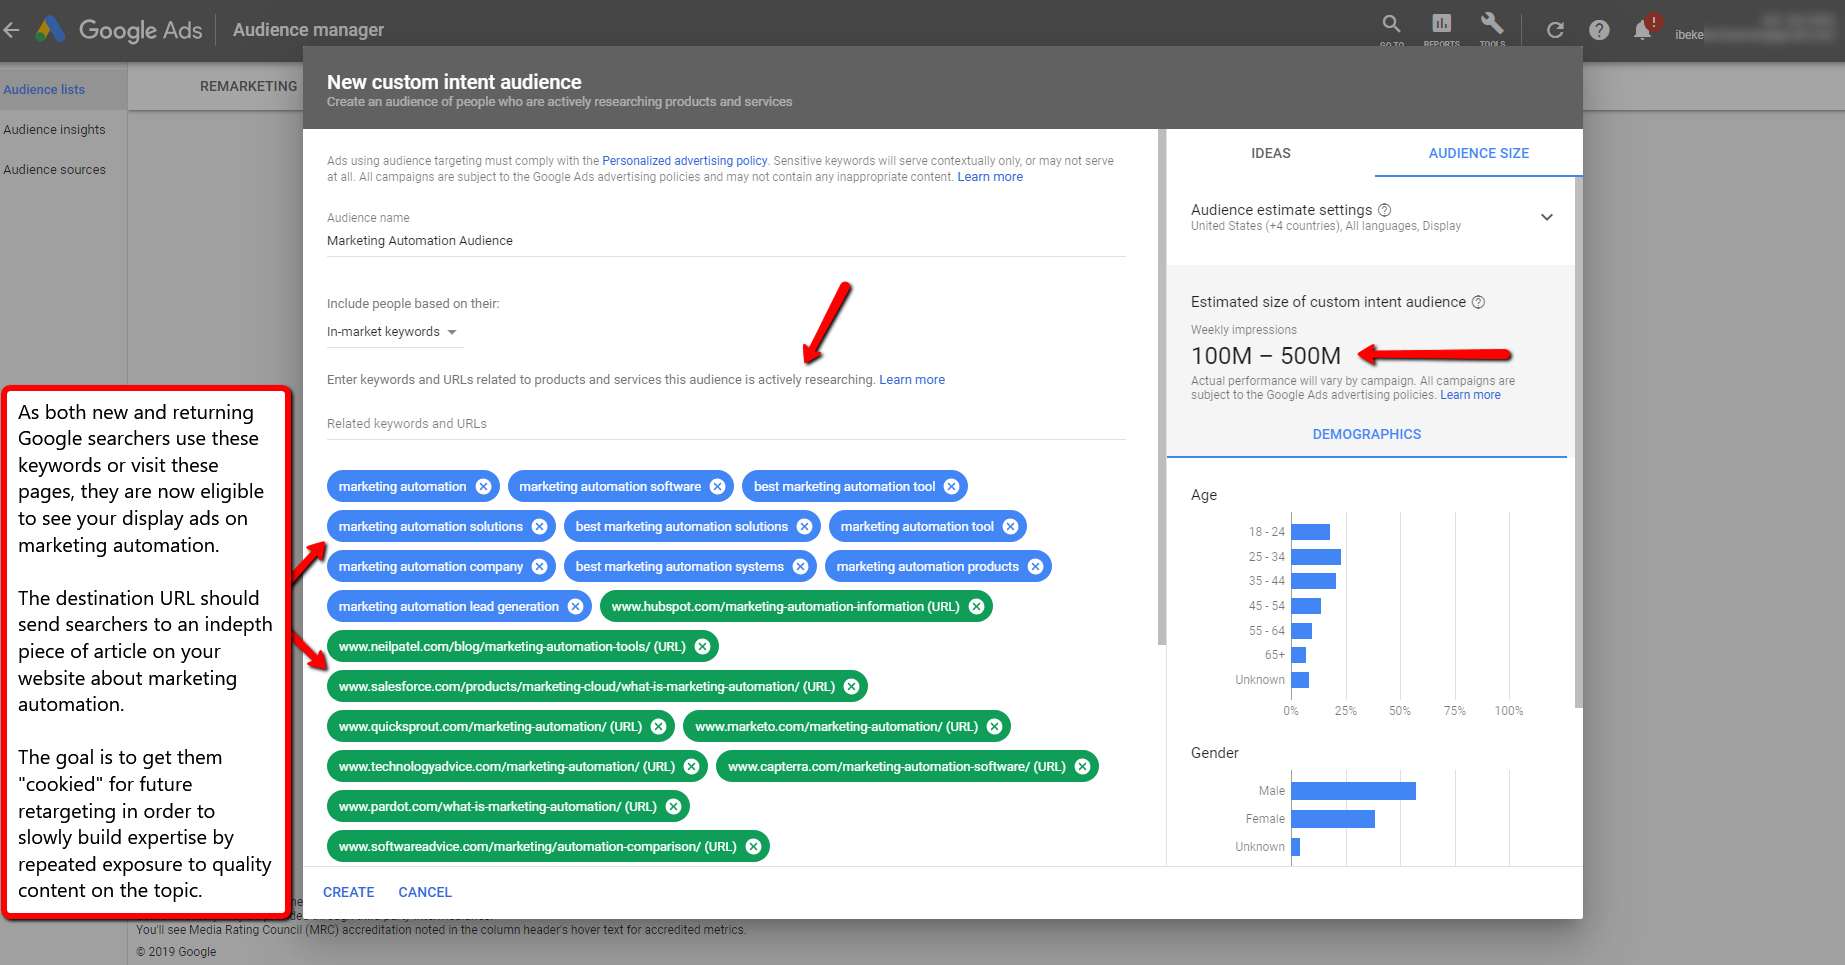 The Ultimate Guide to Google's Custom Intent Audiences. Image 11